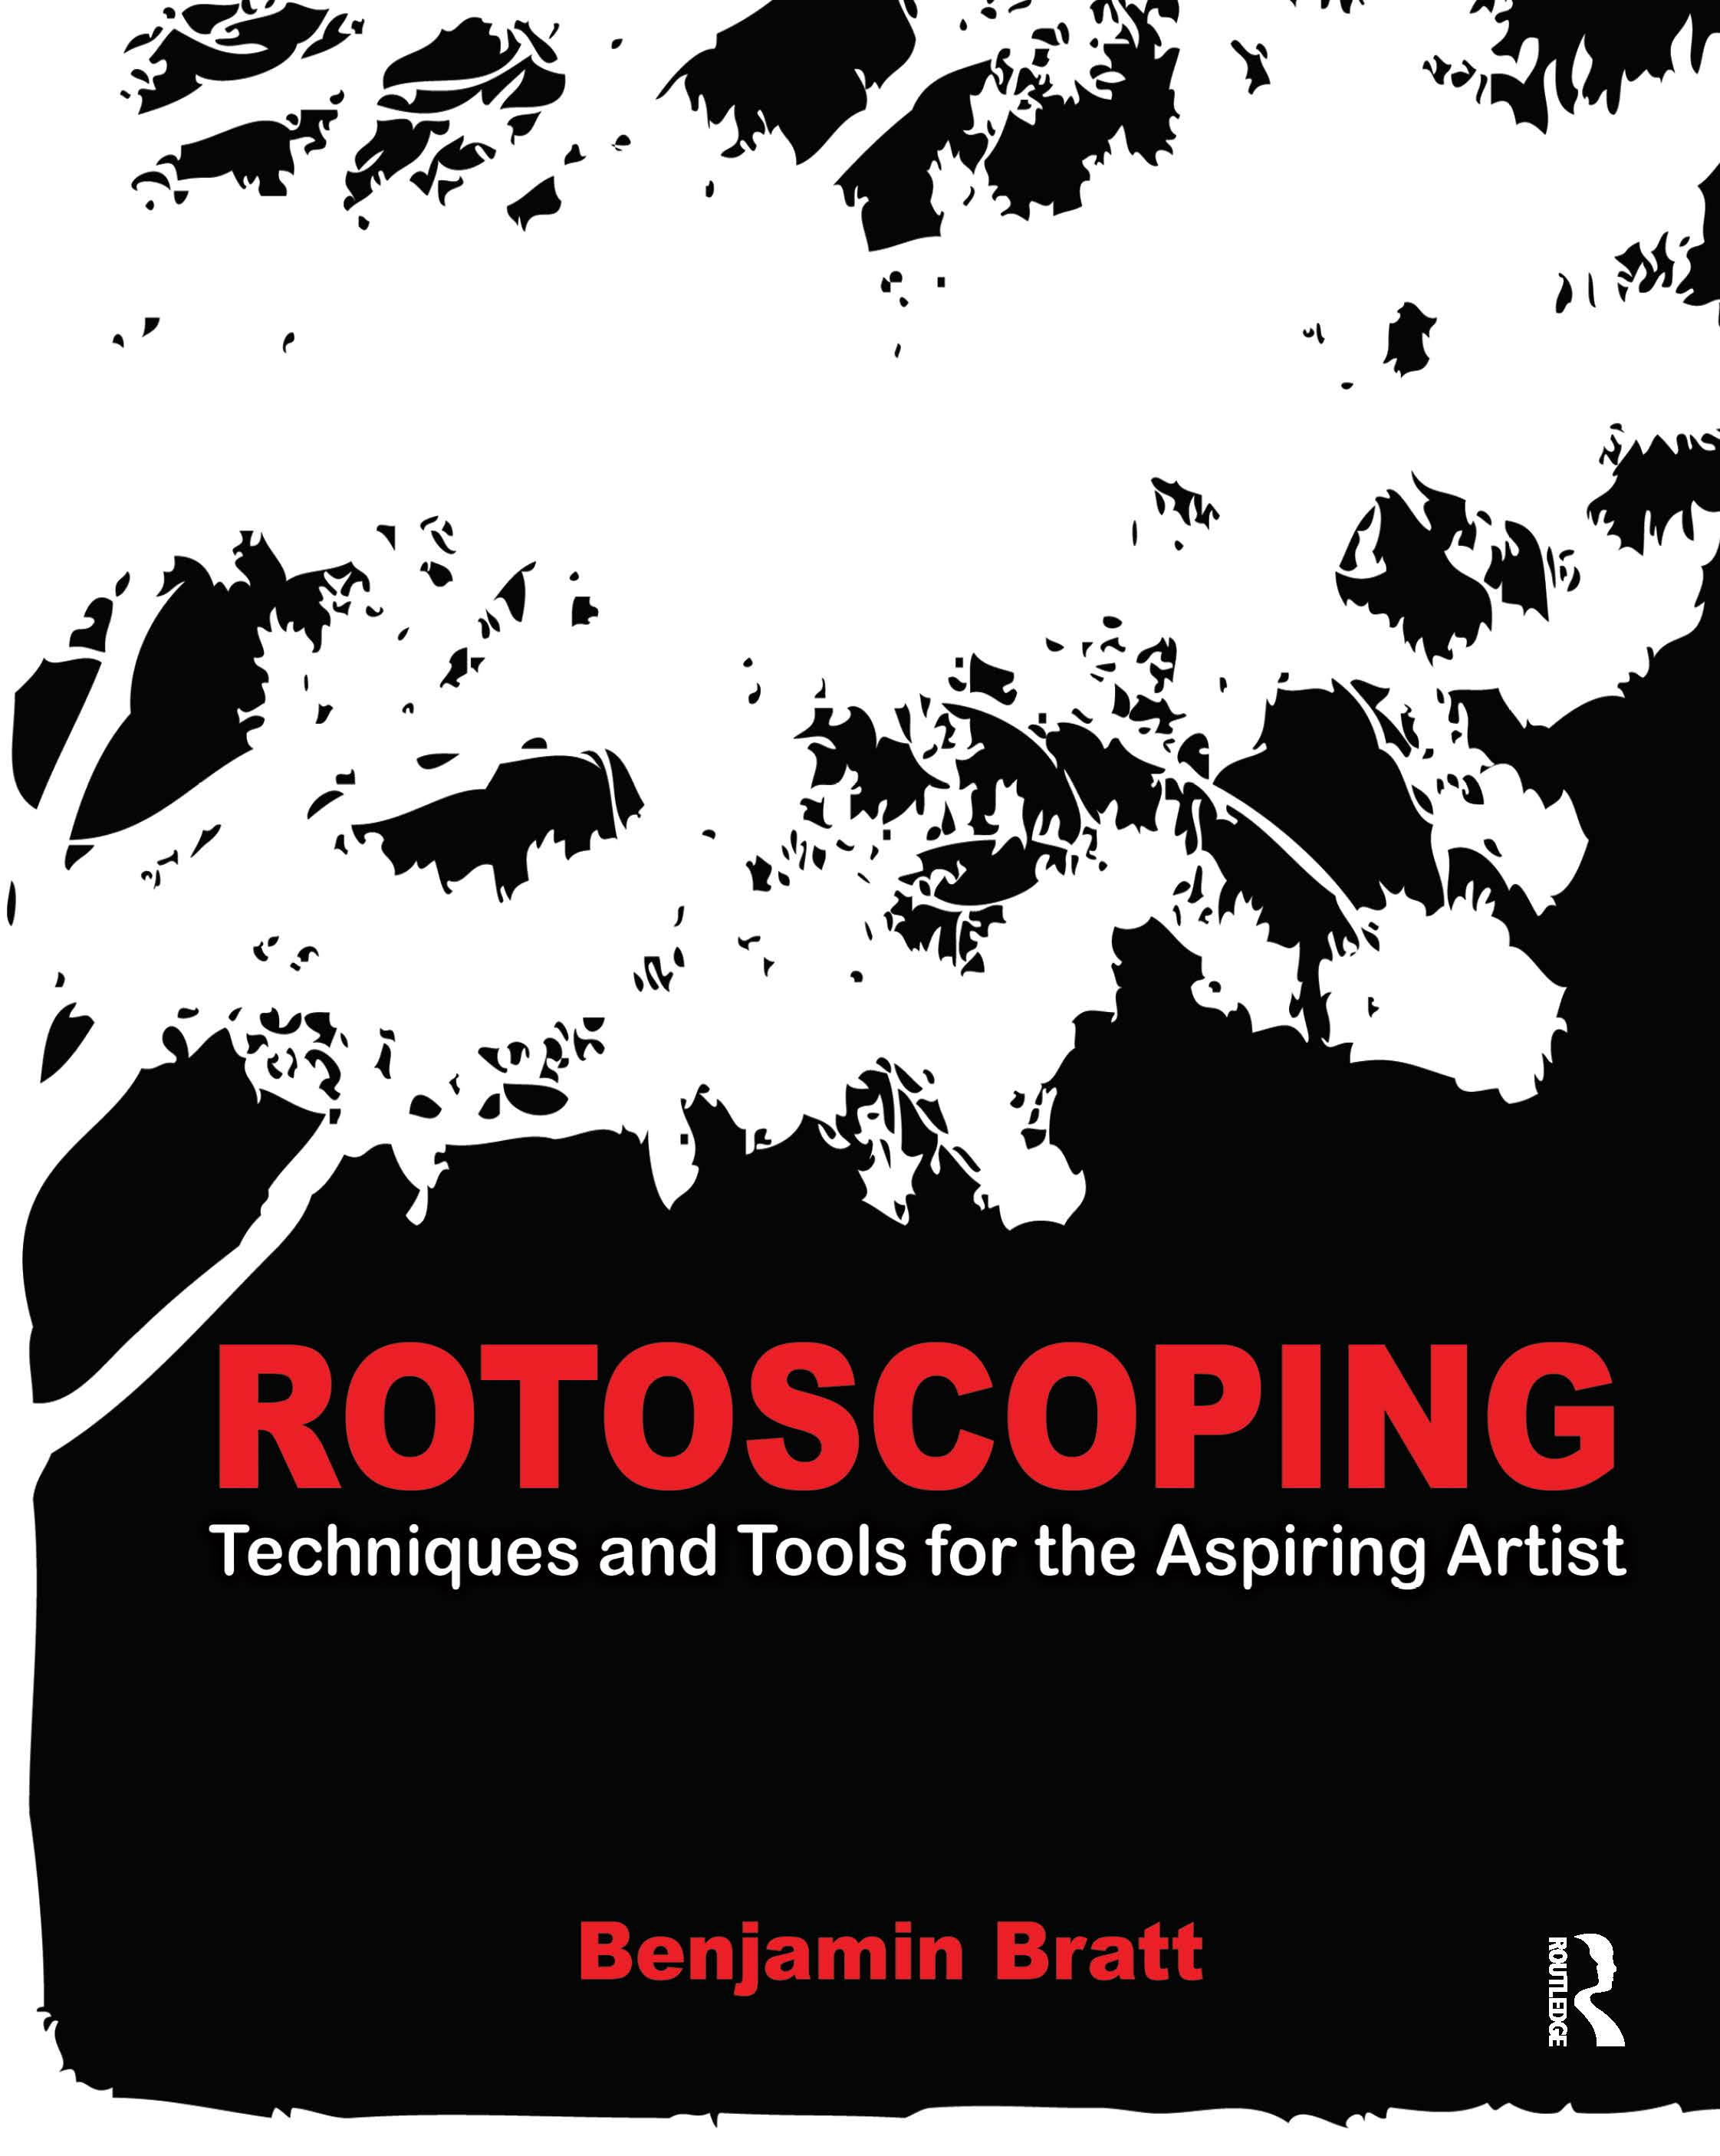 Rotoscoping: Techniques and Tools for the Aspiring Artist book cover